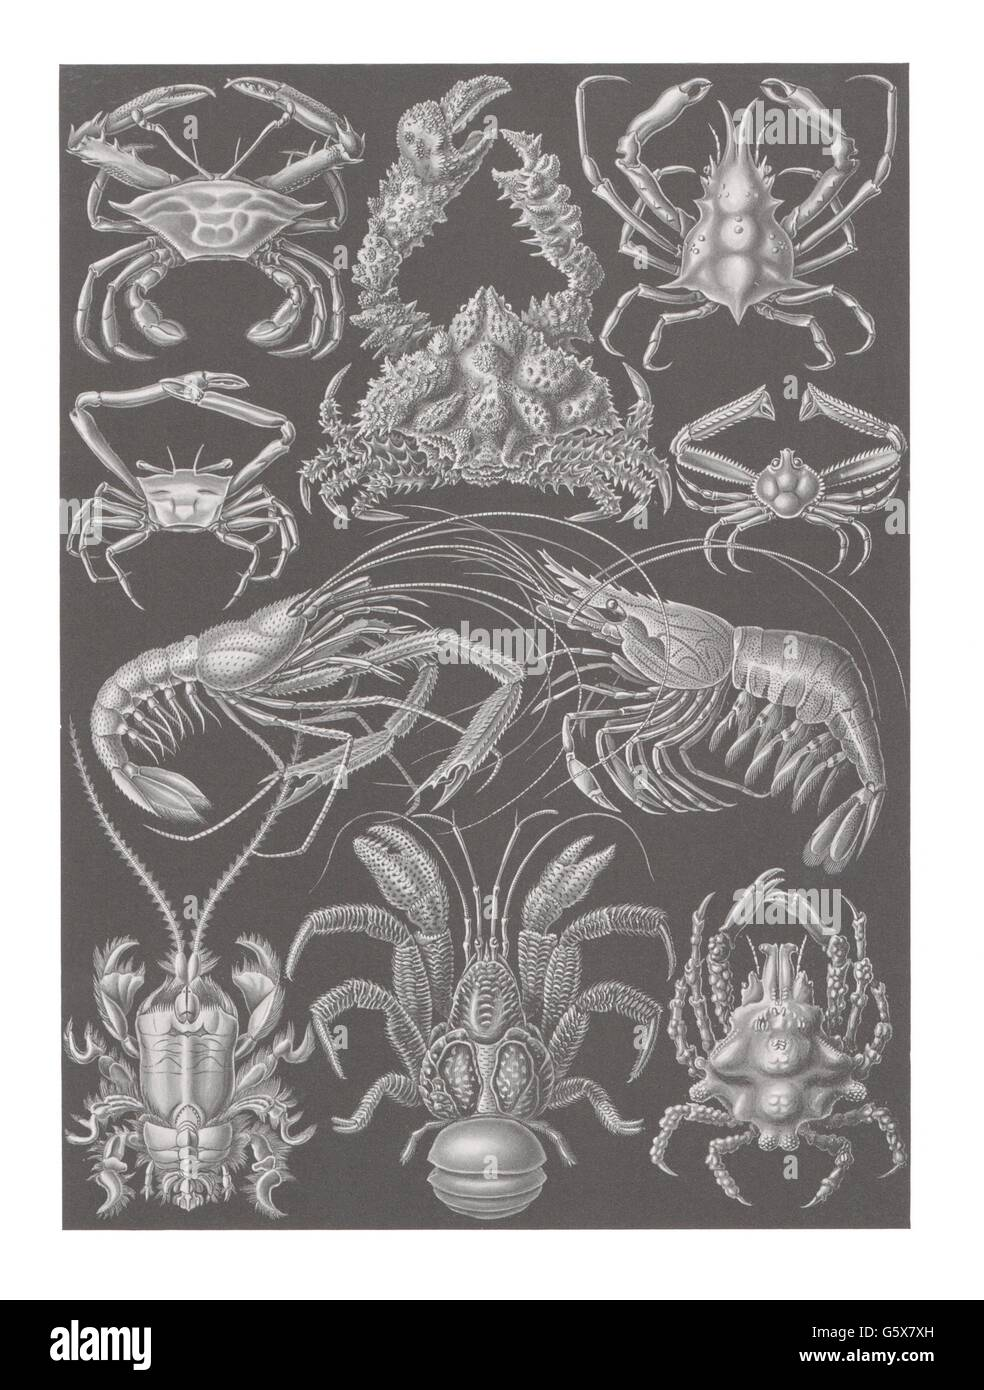 zoology / animals, crustacea, decapods (Decapoda), colour lithograph, out of: Ernst Haeckel, 'Kunstformen der - Stock Image